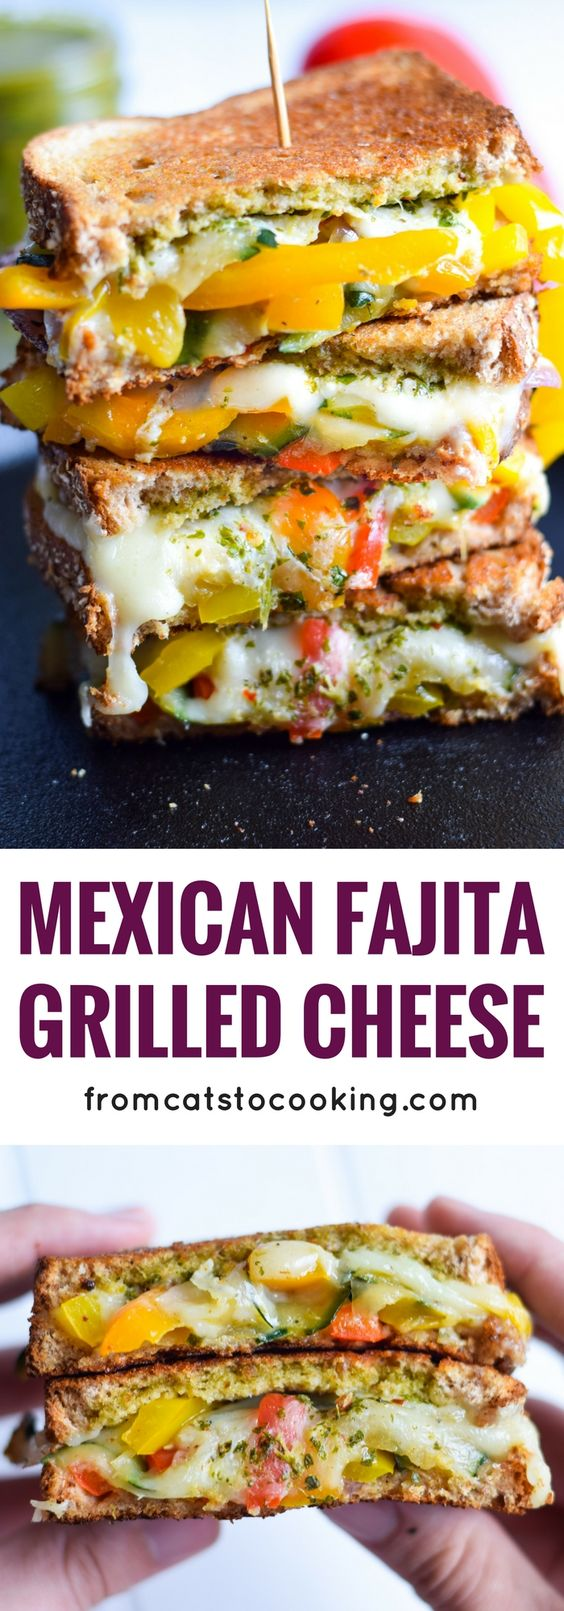 Made with sautéed vegetables, a cilantro parsley chimichurri spread and lots of…